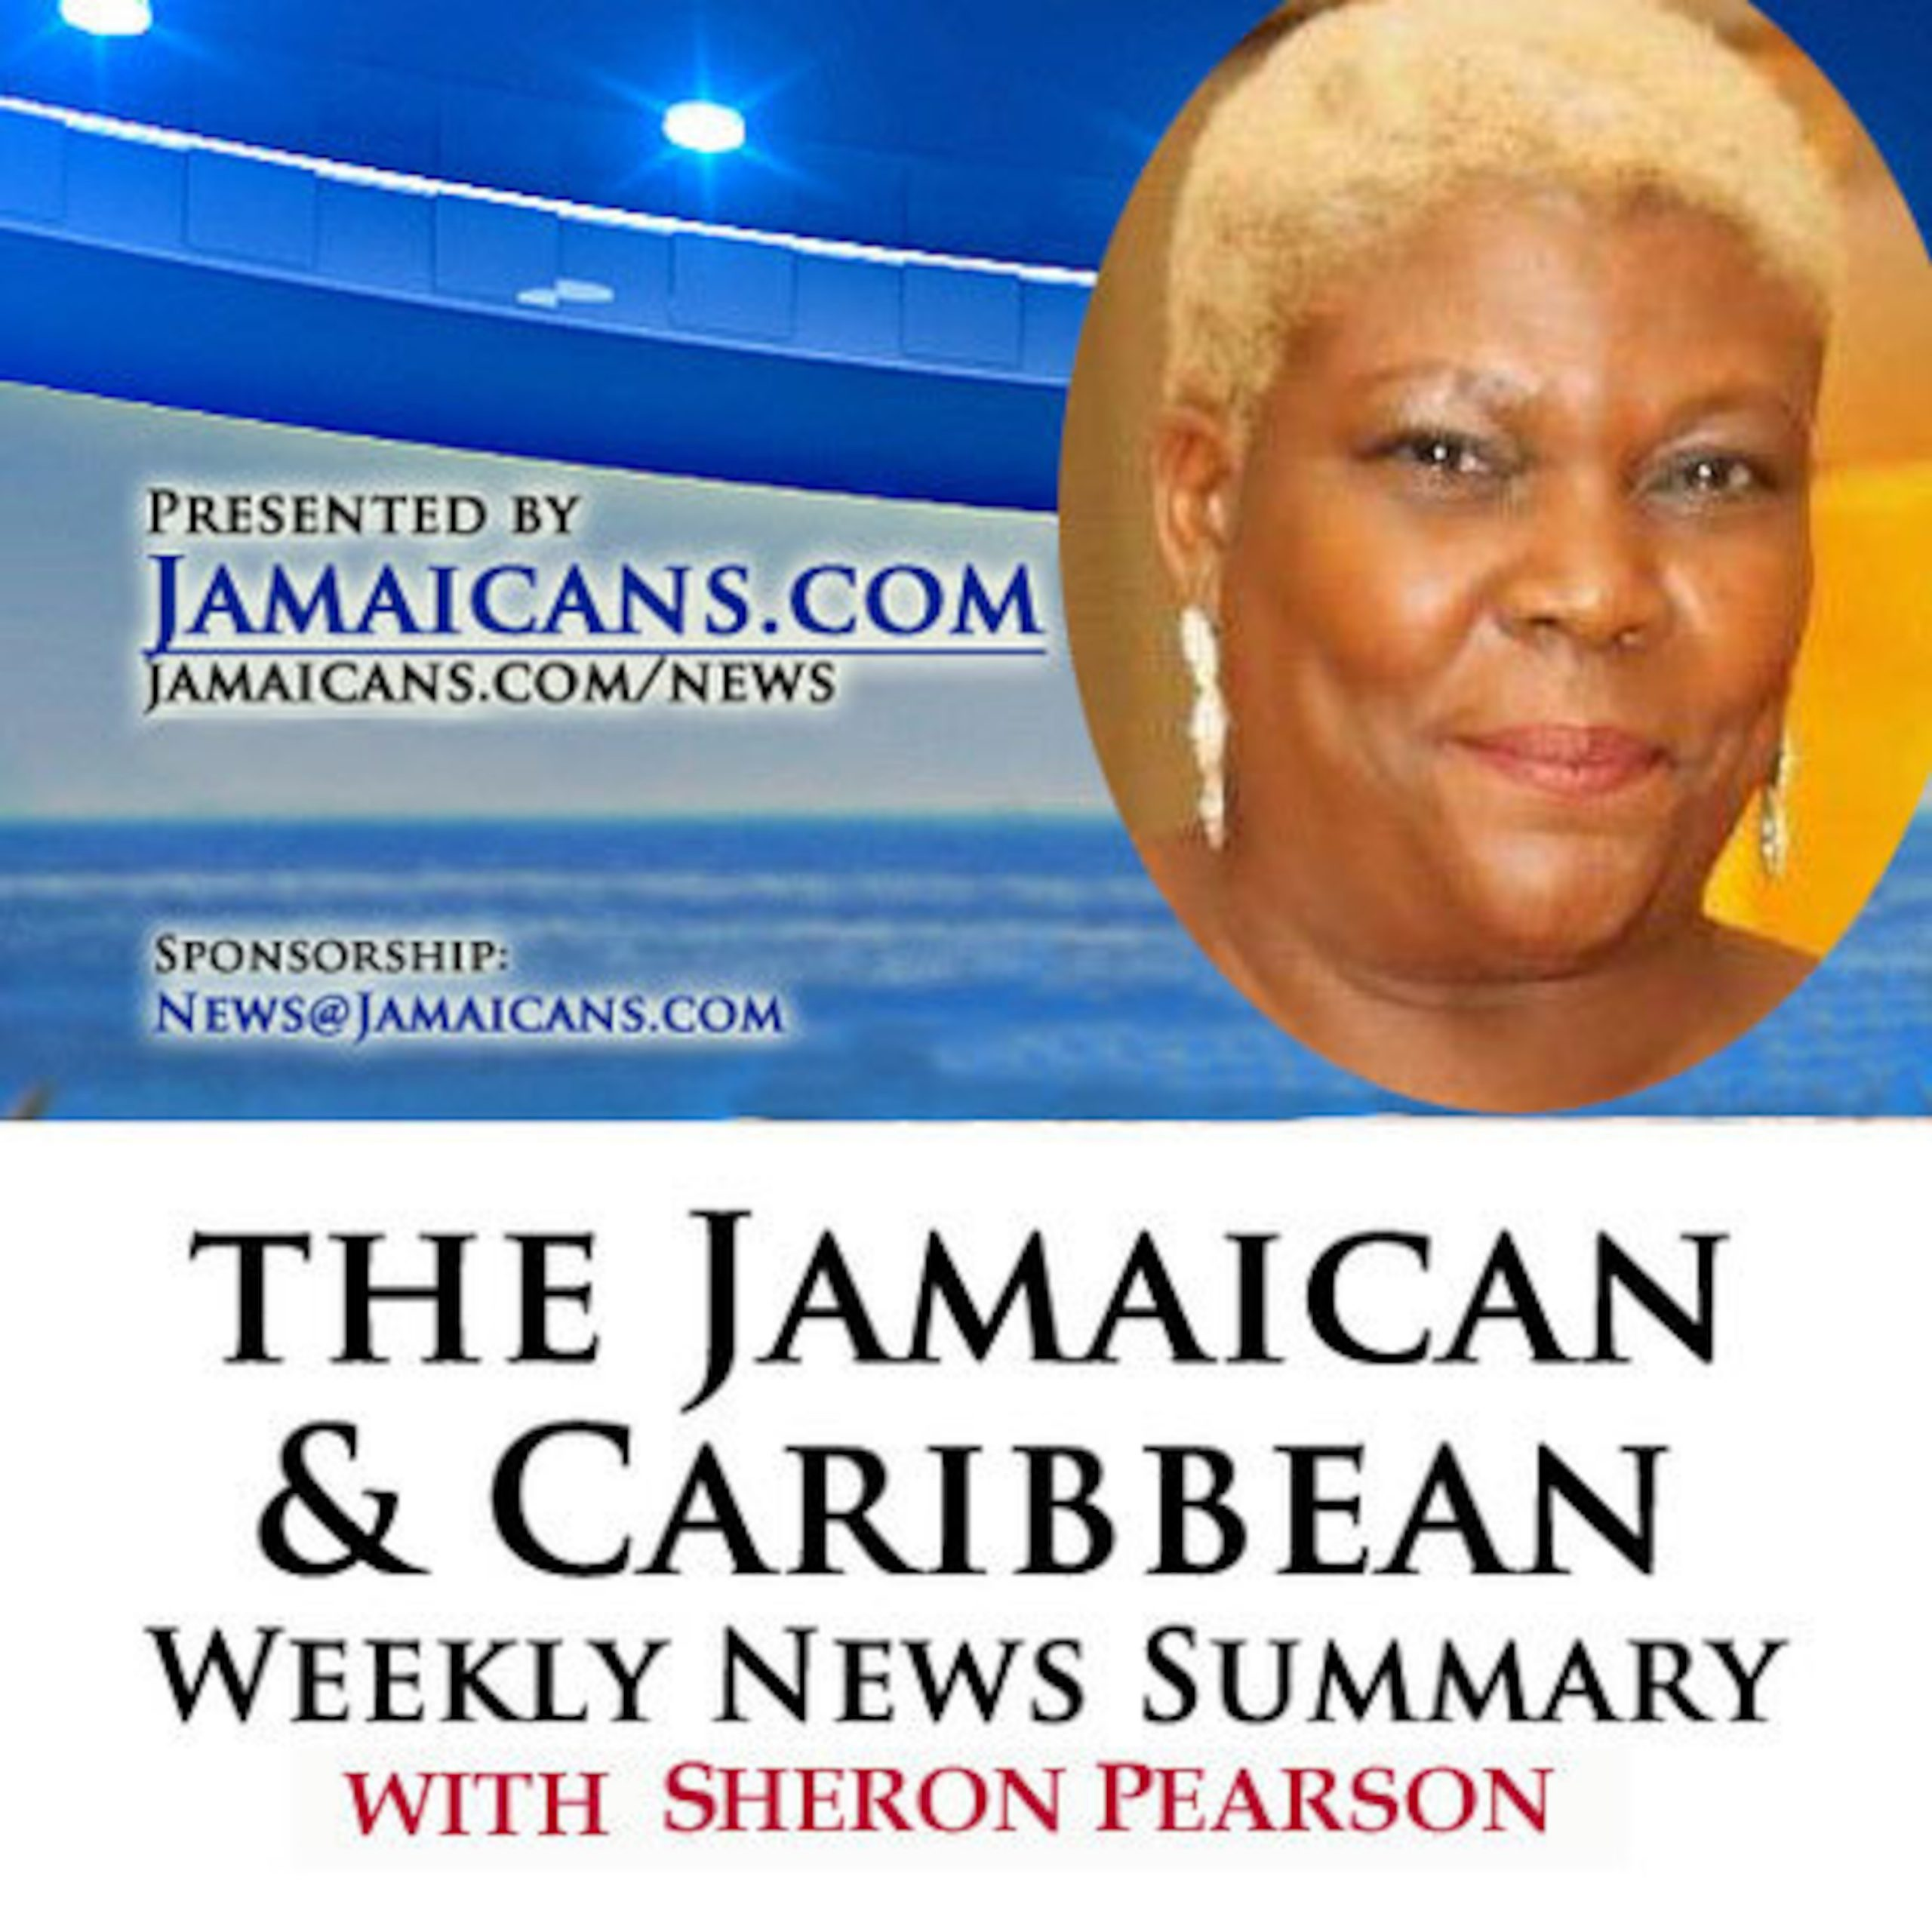 Listen to the Podcast of The Jamaica & Caribbean Weekly News Summary for the week ending April 17, 2020